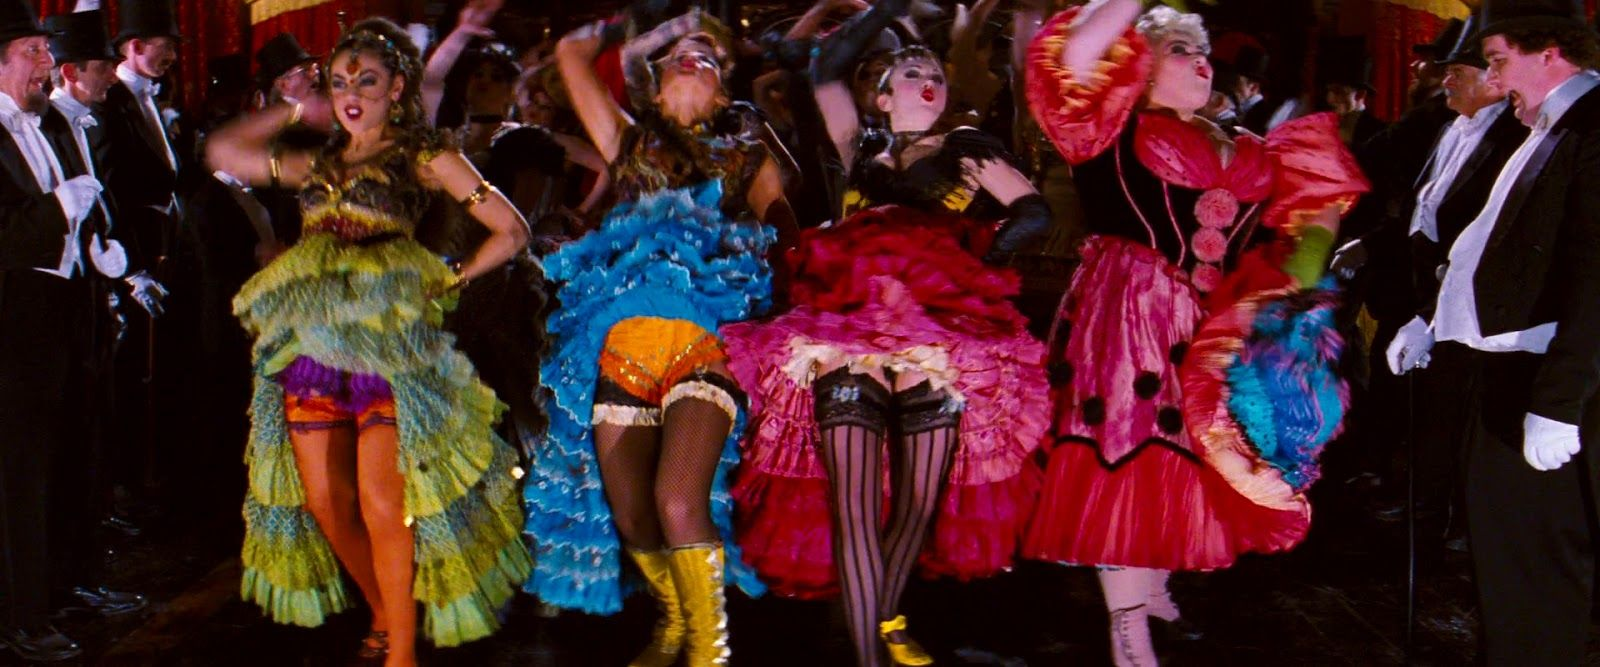 Moulin rouge party moulin rouge party pinterest - Moulin Rouge Film Stills Google Search